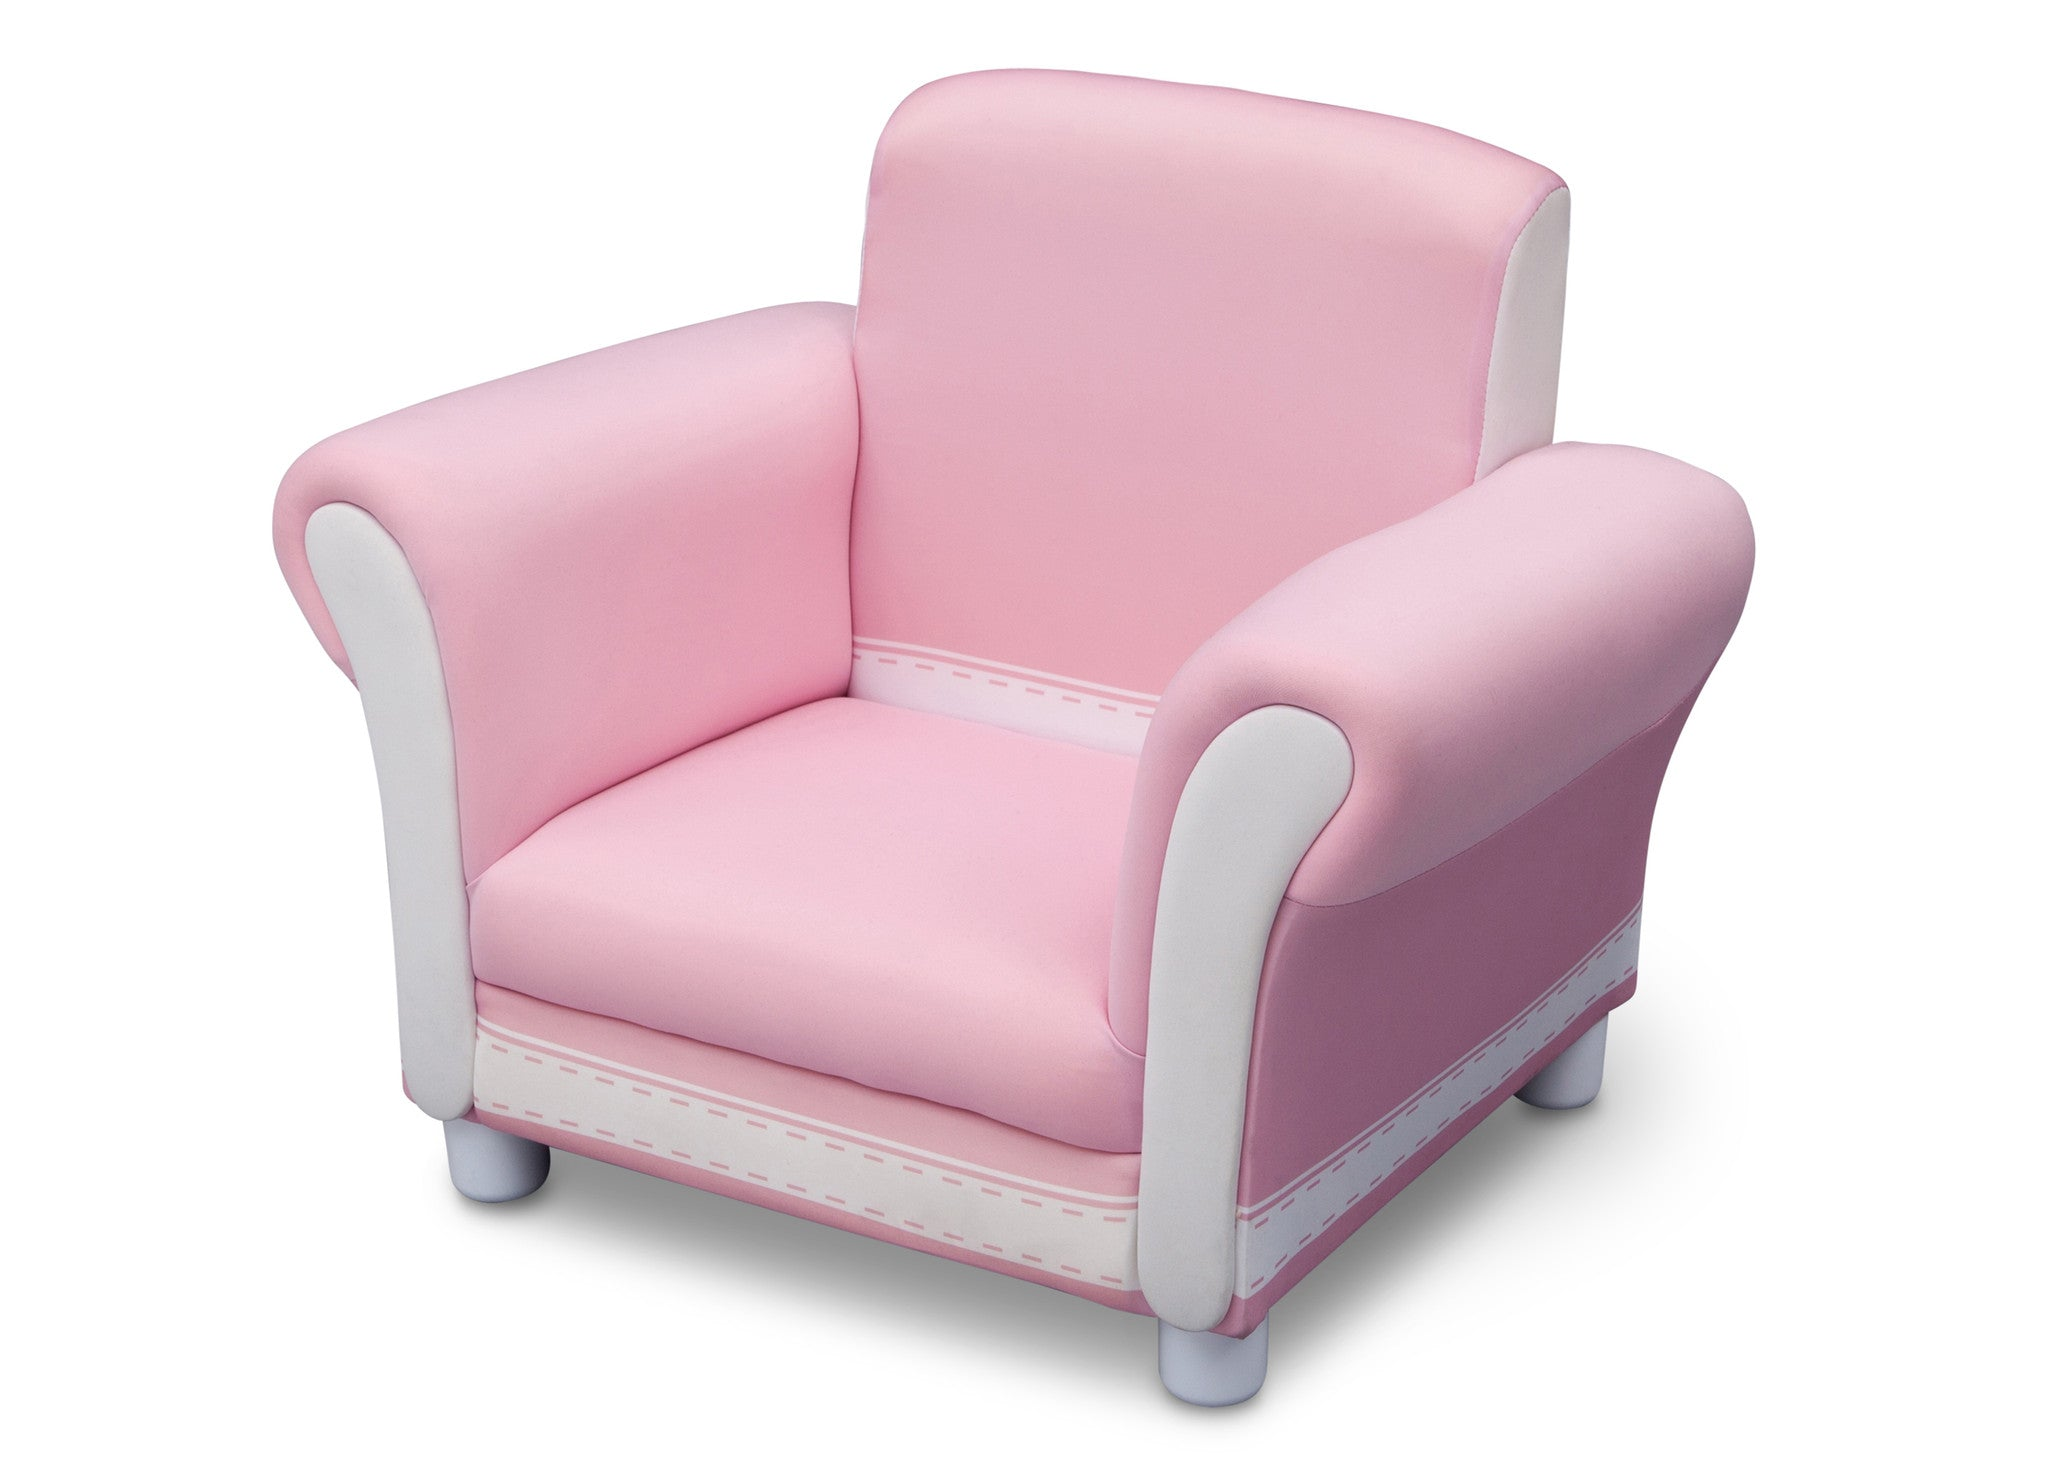 Generic Pink Upholstered Chair Delta Children Eu Pim